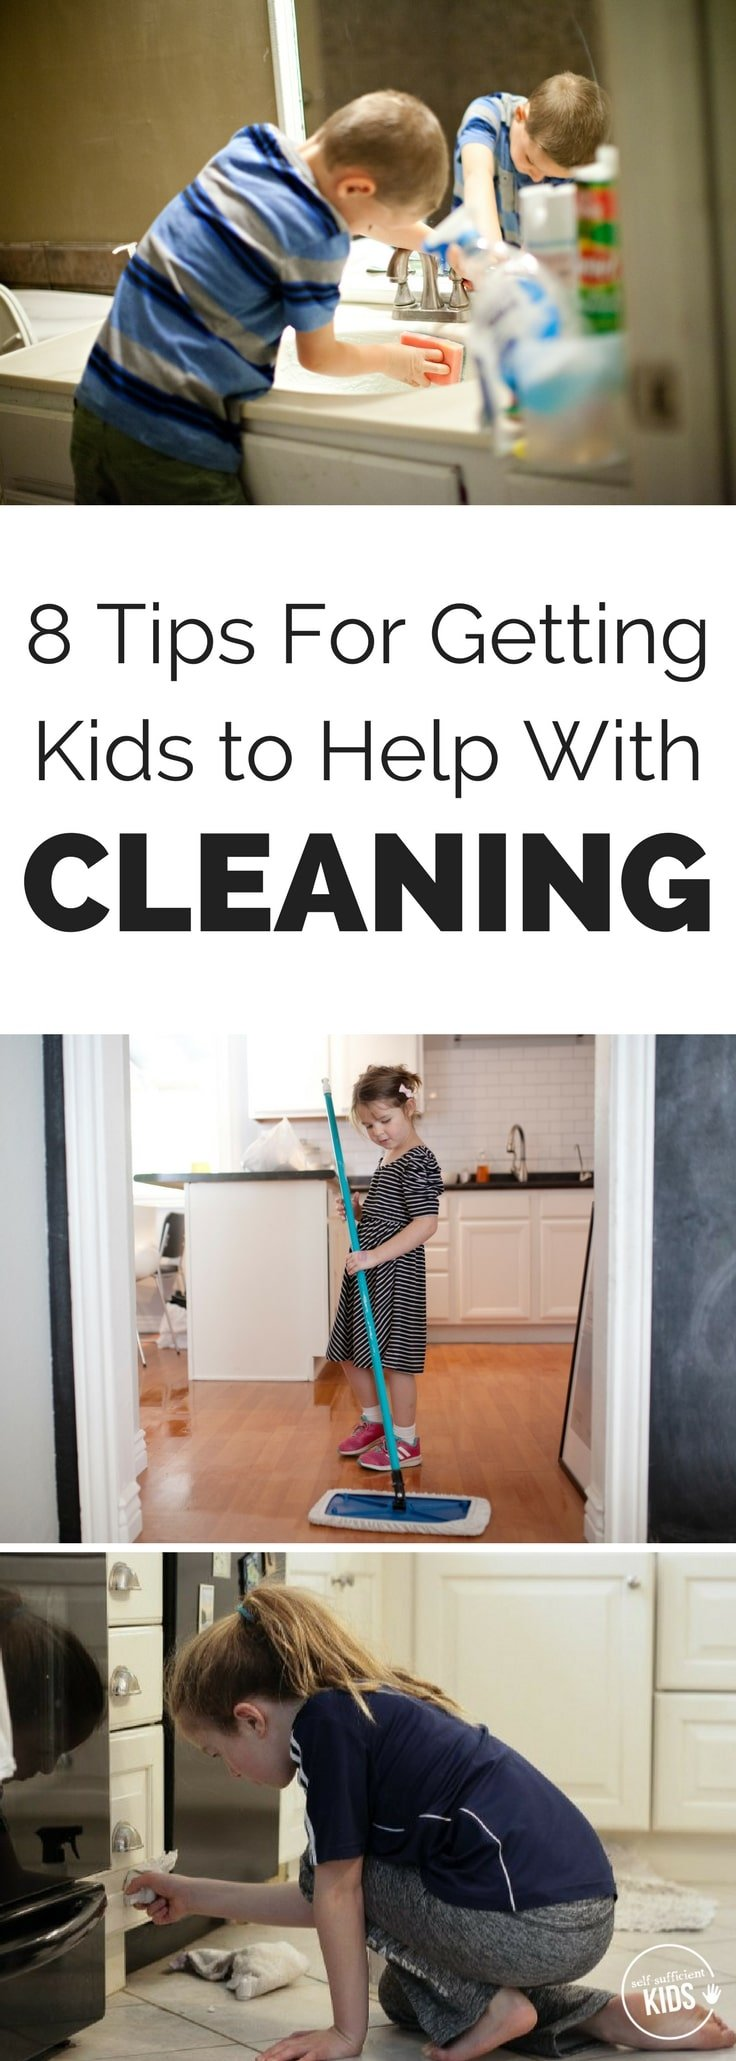 Getting kids to help with cleaning not only means less work for parents but also builds a life skill research says is necessary for kids' success. 8 Tips for Getting Kids to Help With Cleaning